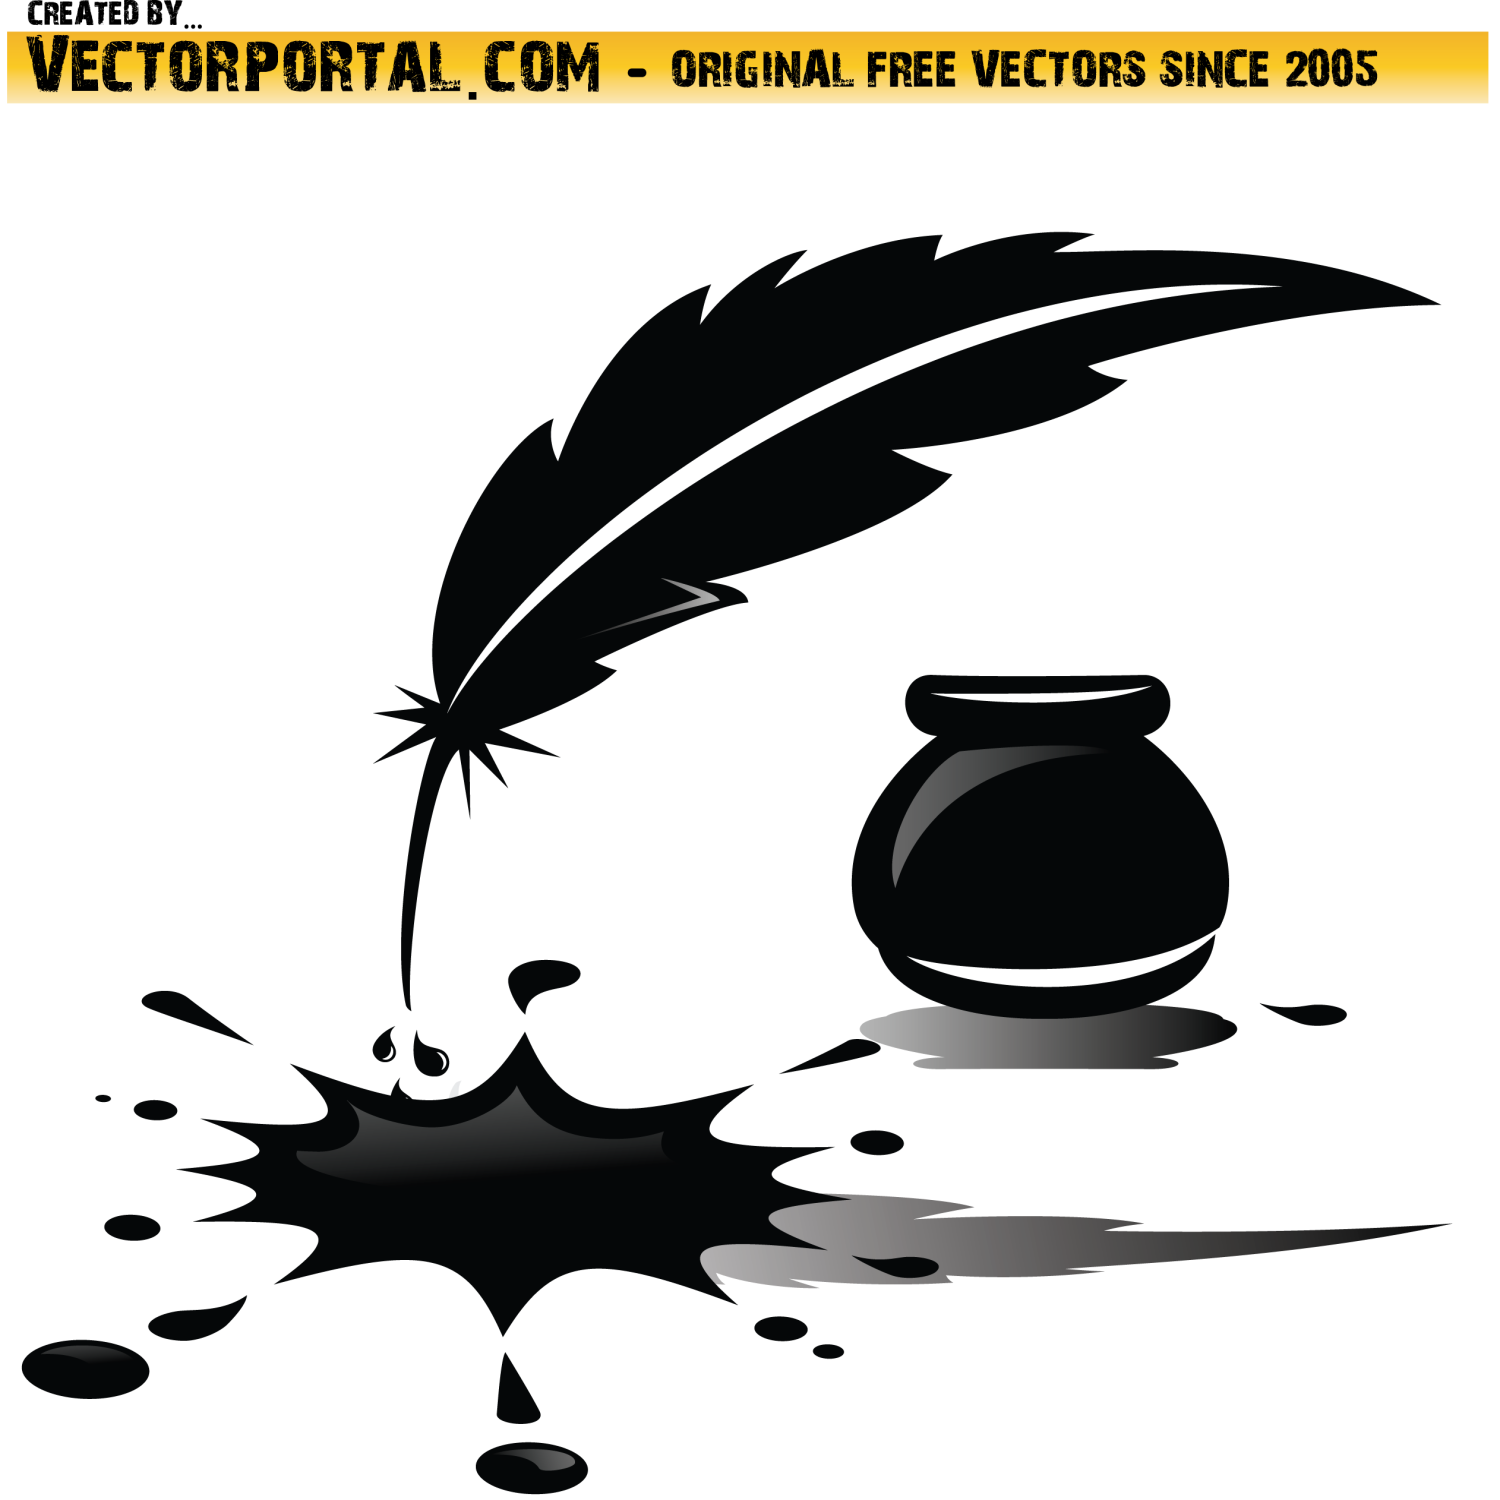 Spilled Ink and Feather Vector